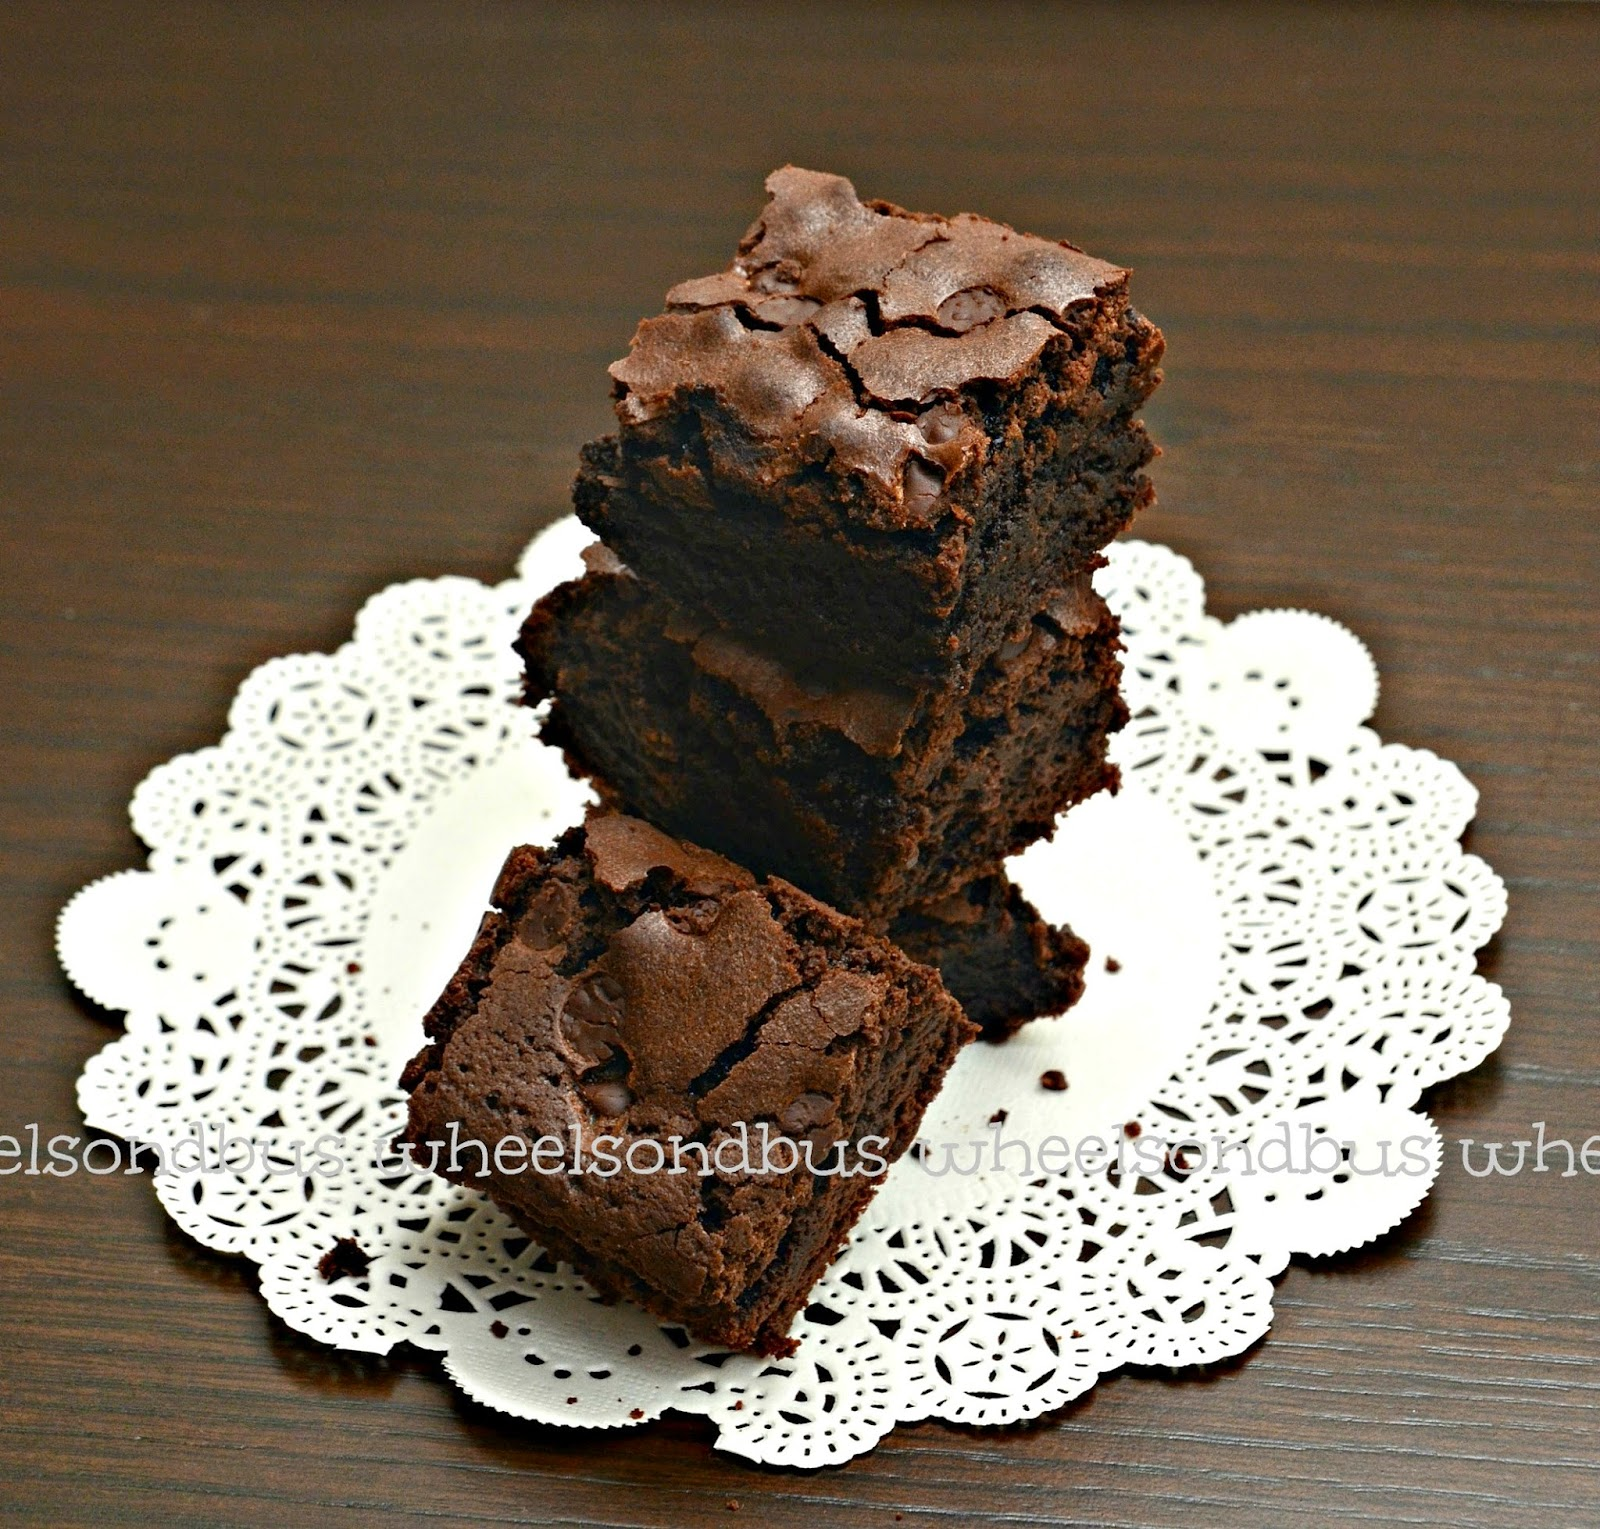 ... : Brownies Challenge : Recipe #1 Brooke's Bombshell Brownies